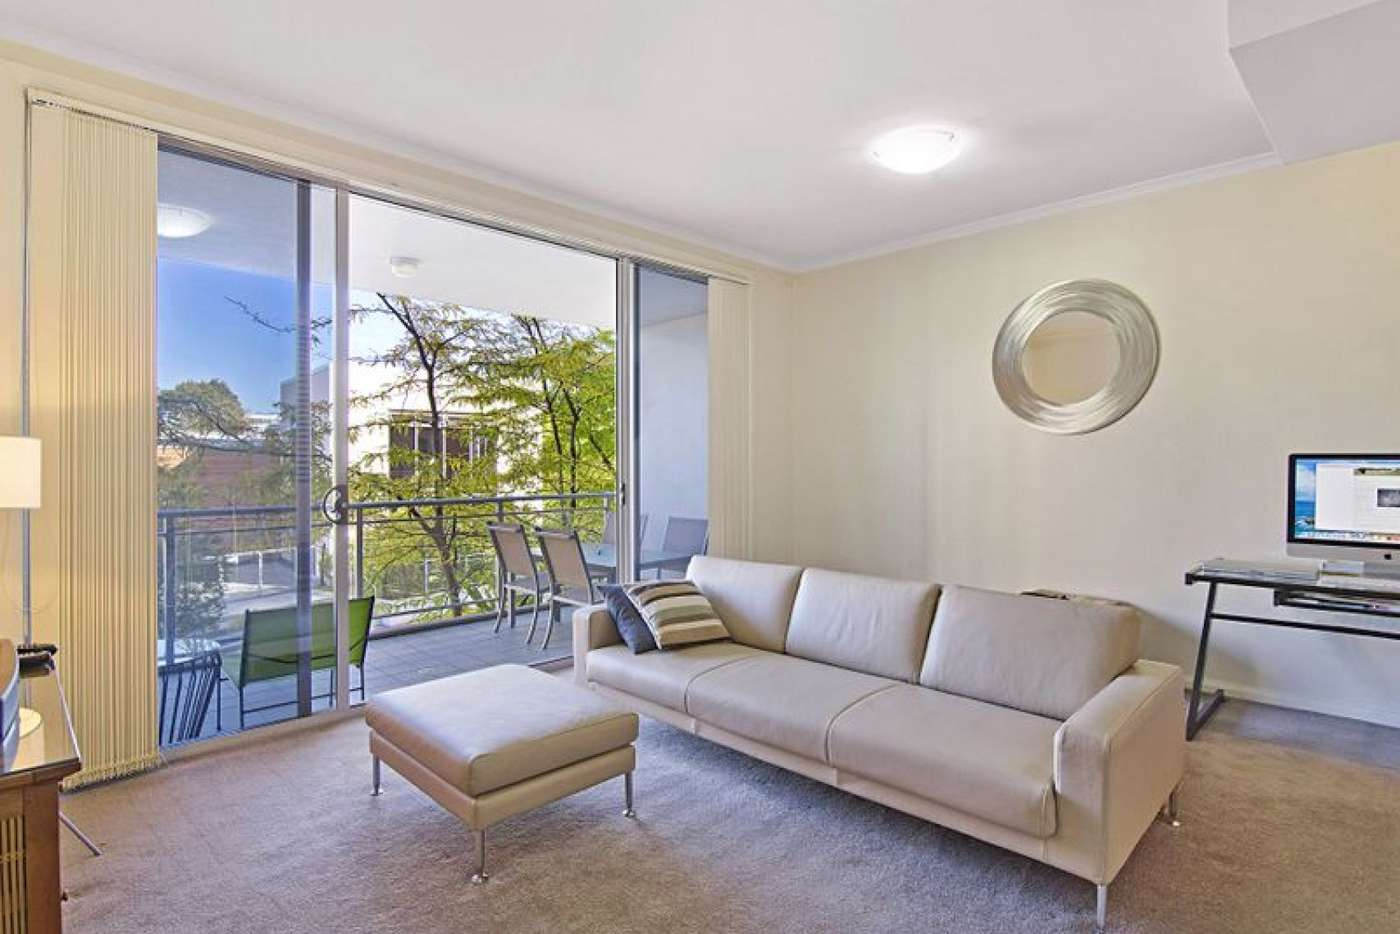 Sixth view of Homely apartment listing, 118/268 Pitt Street, Waterloo NSW 2017